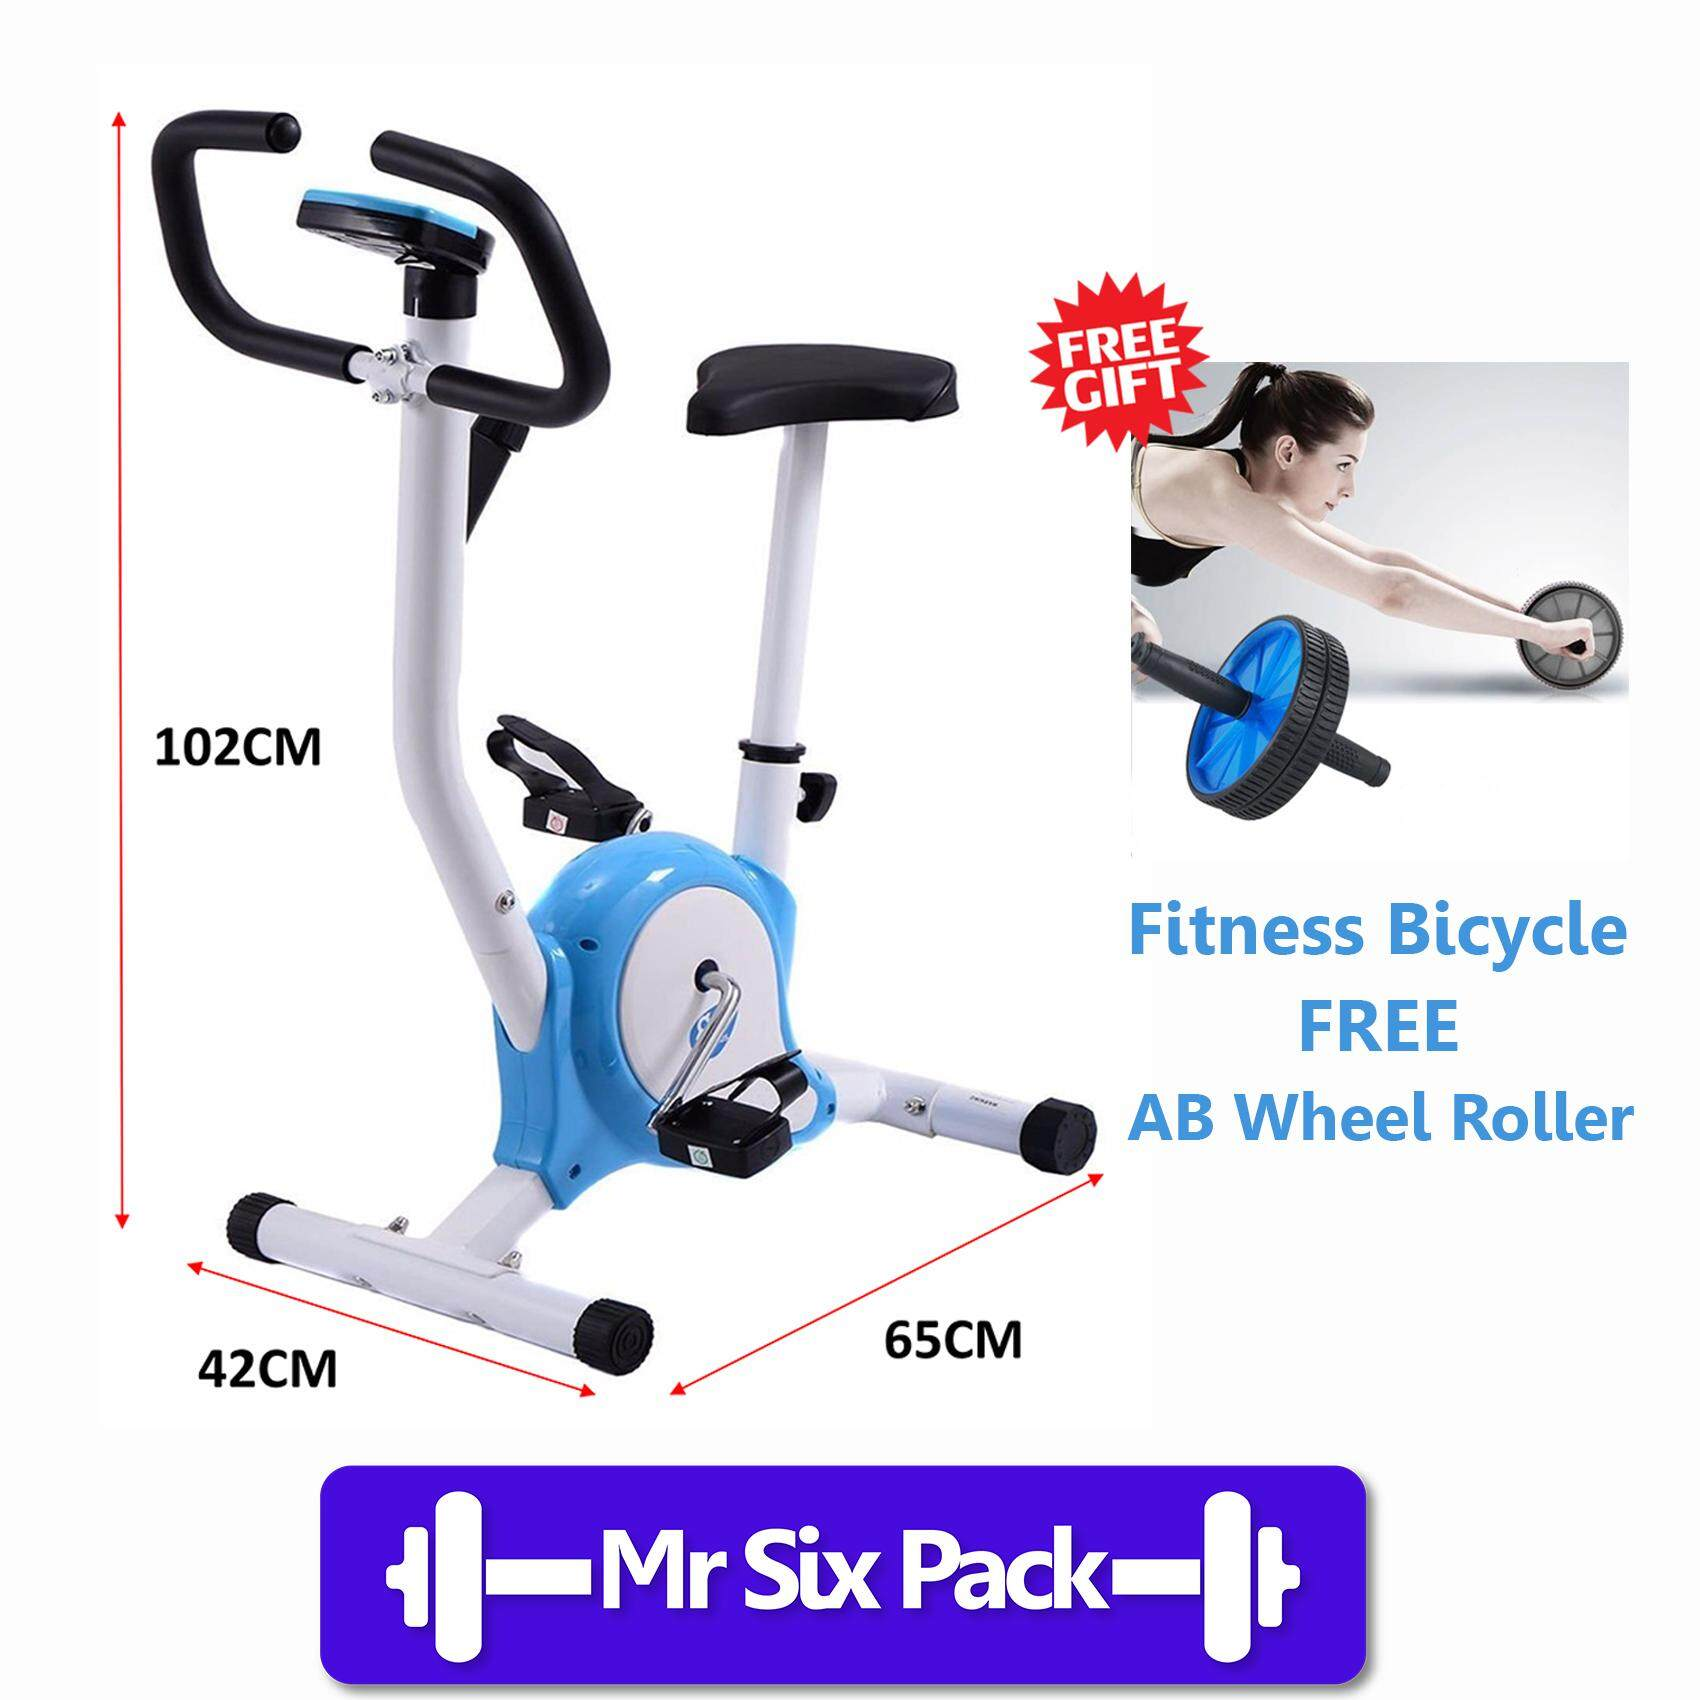 Exercise Fitness Bicycle With Roller (random Colour) By Mr Six Pack.